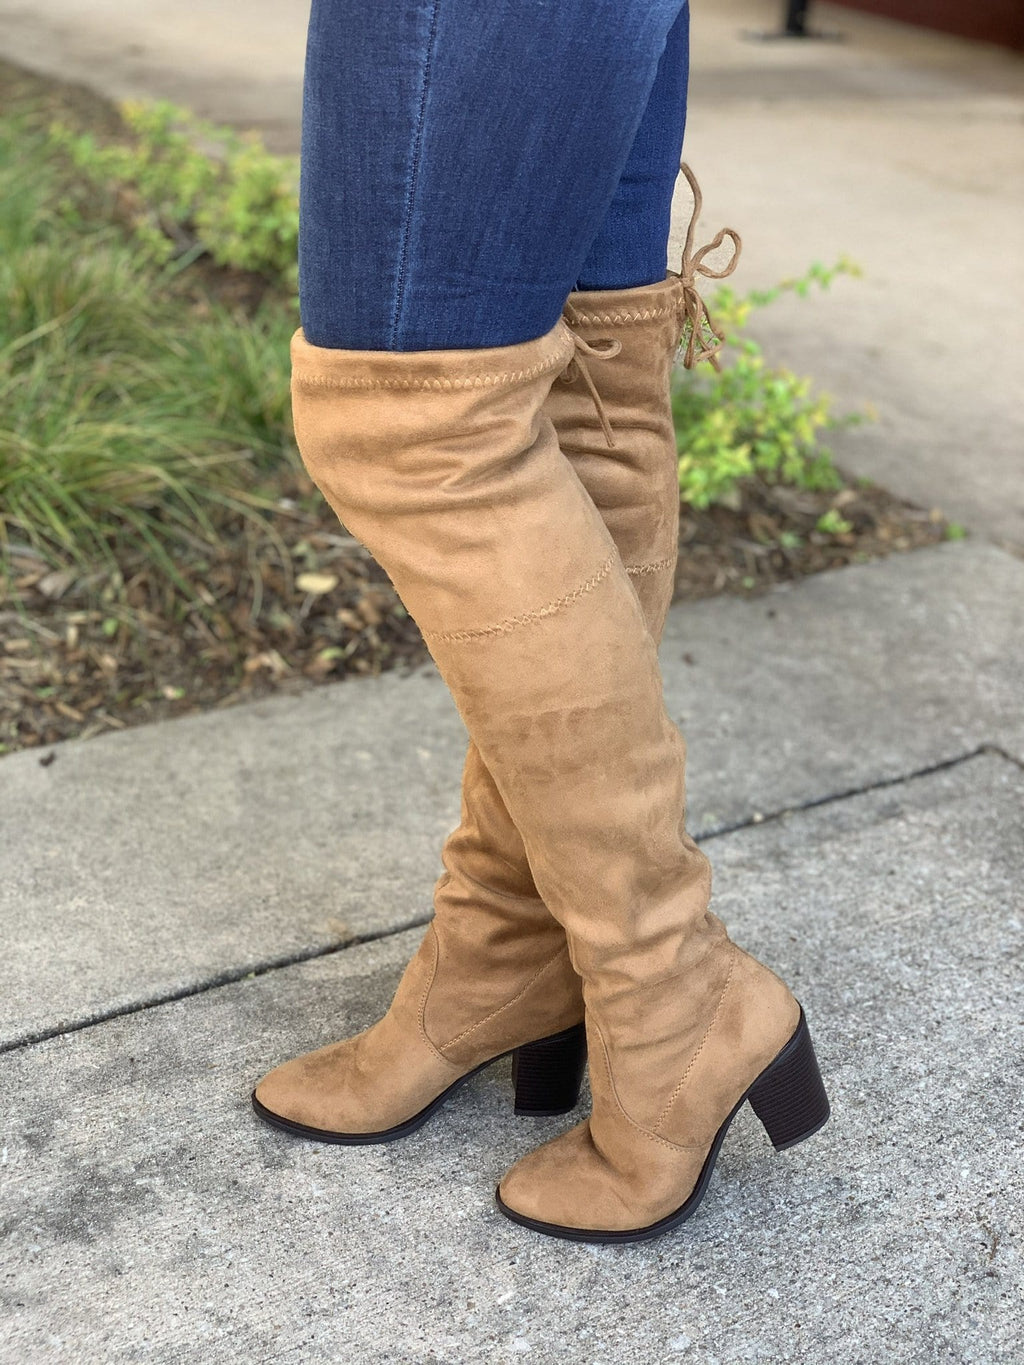 ROUND HERE BUZZ BOOTS-TAN - Infinity Raine